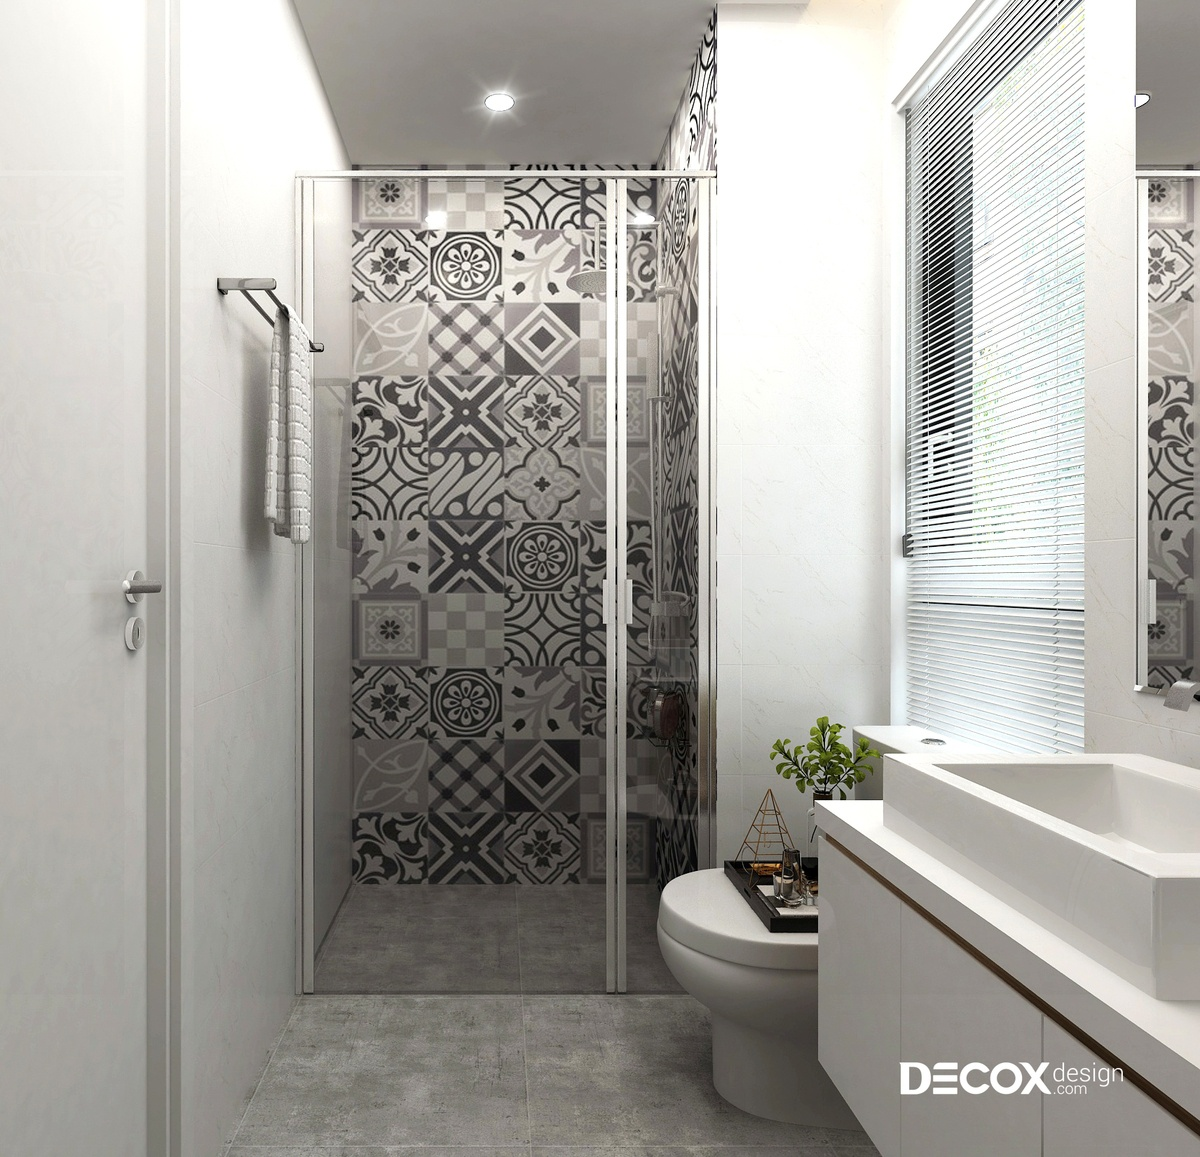 thiet-ke-noi-that-palm-heights-120m2-m190005-wc-chung-21-decox-design